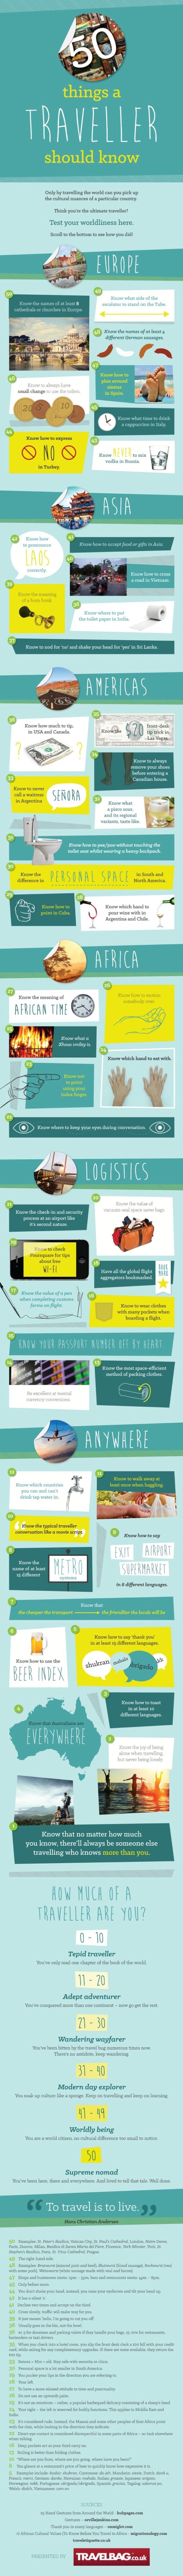 50 Things You Need To Know If You're Going To Be Traveling (infographic)